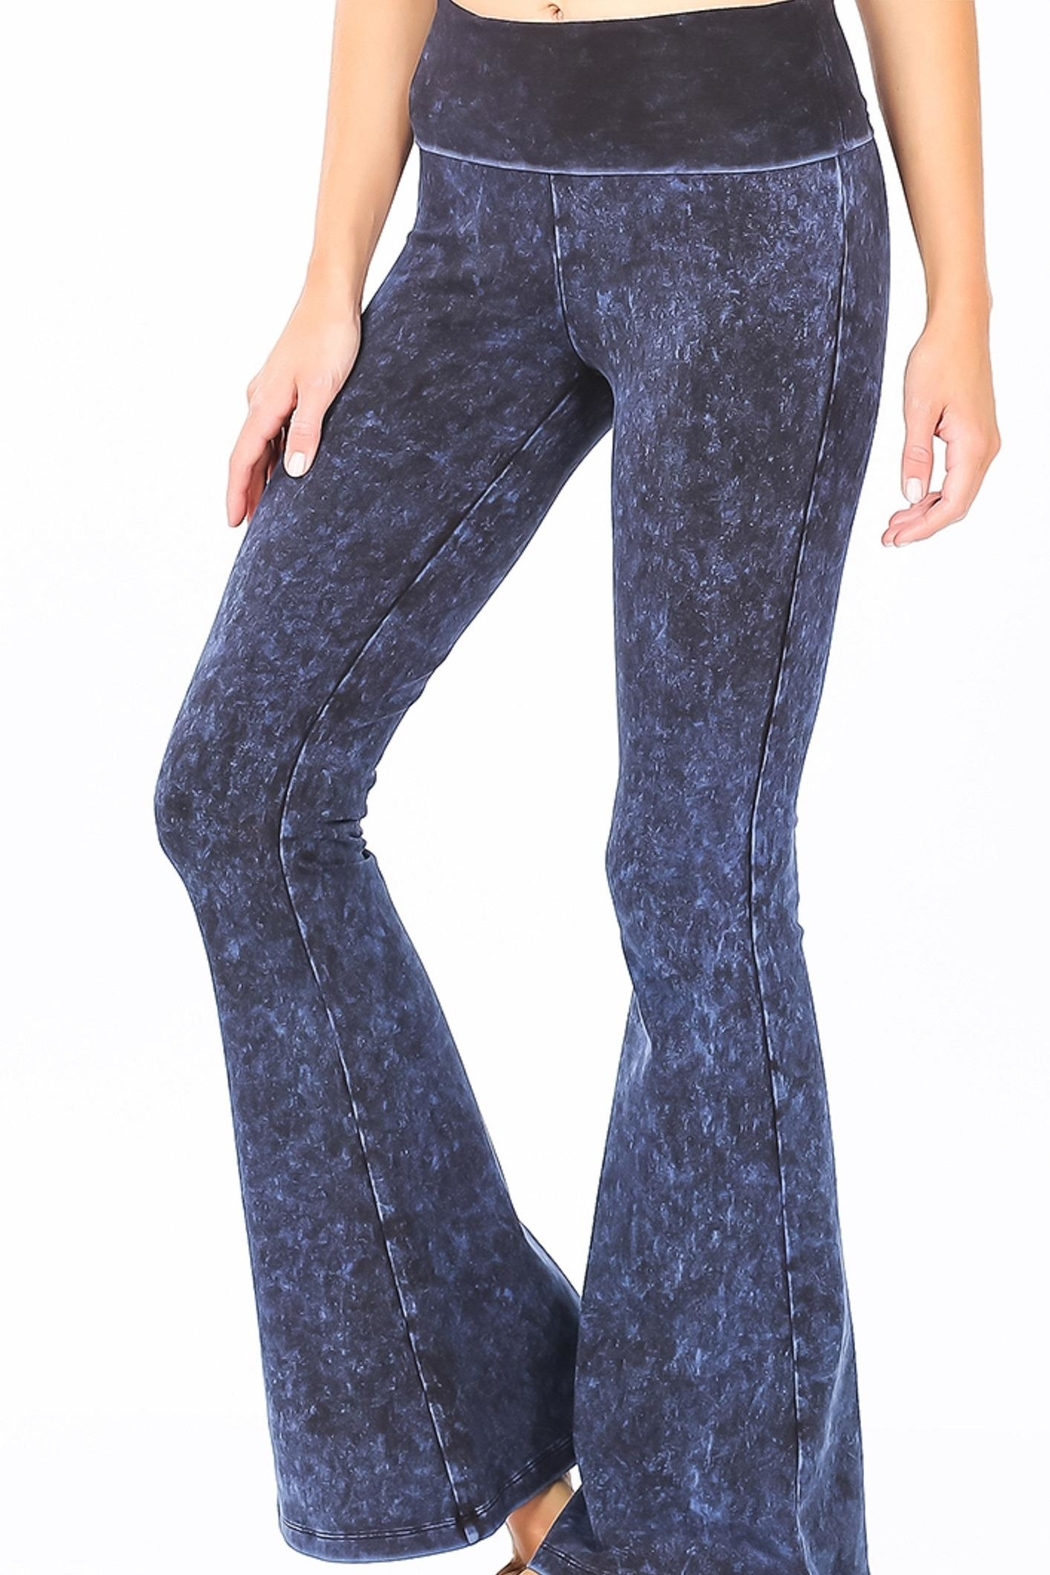 Zenana Outfitters Mineral Wash Pants - Front Cropped Image